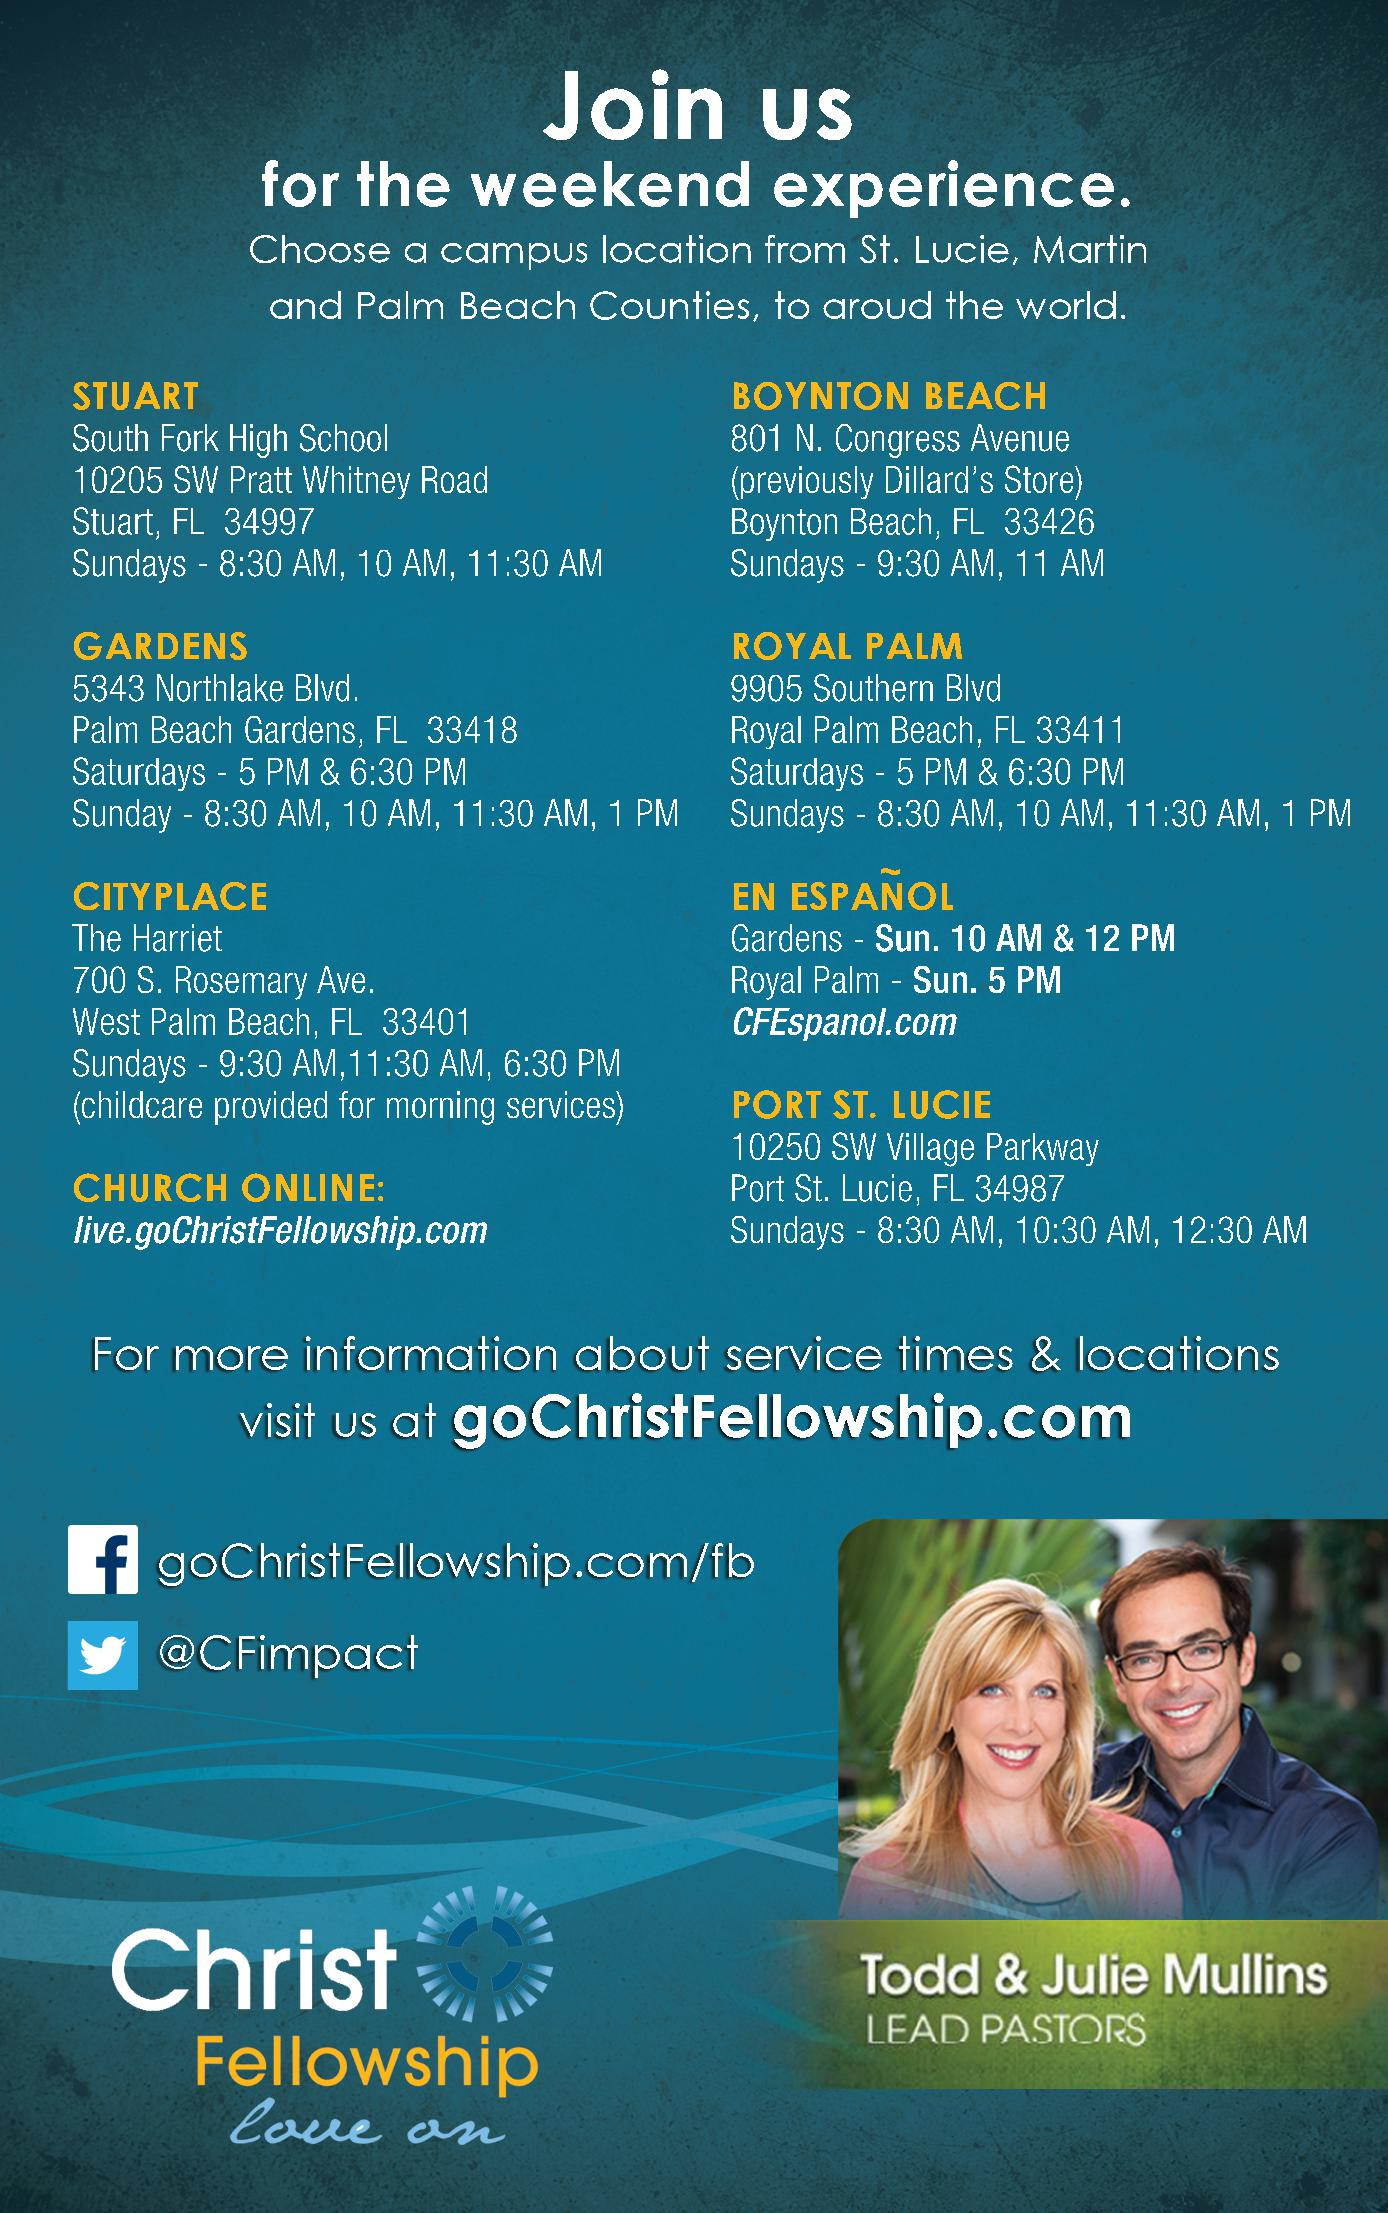 Christ Fellowship - Campuses